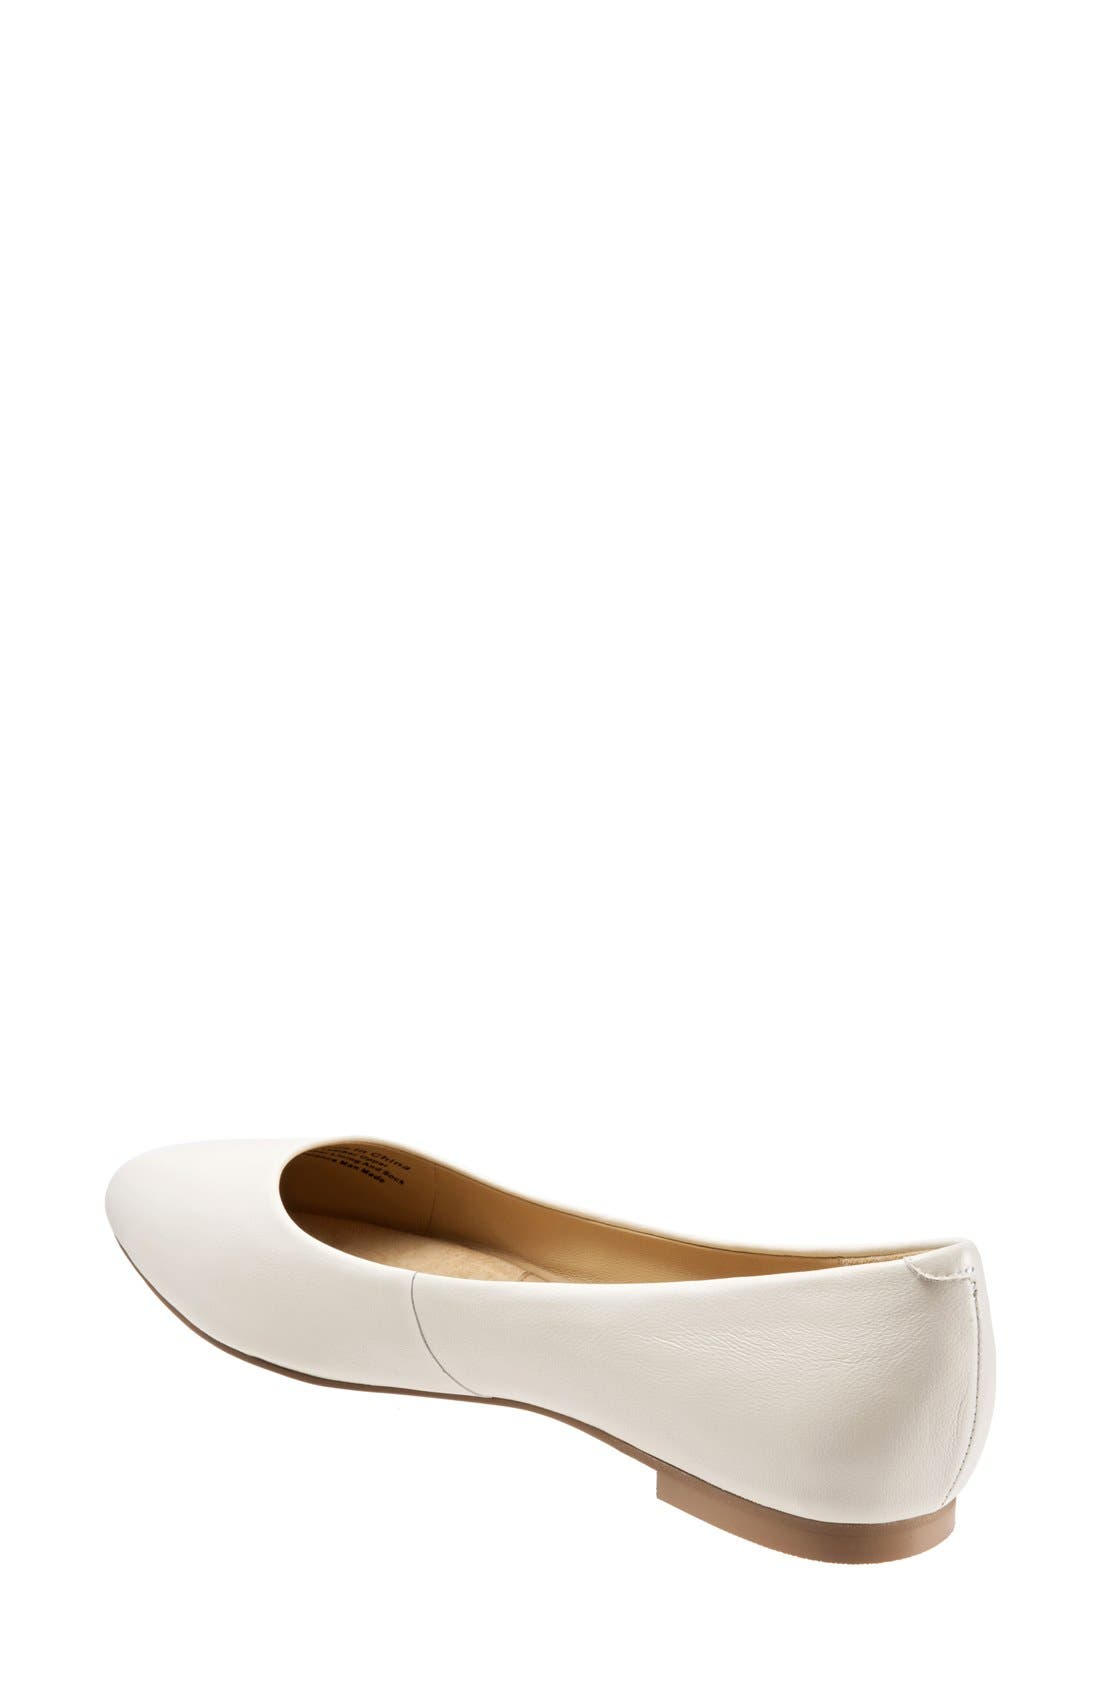 Alternate Image 2  - Trotters Estee Pointed Toe Flat (Women)